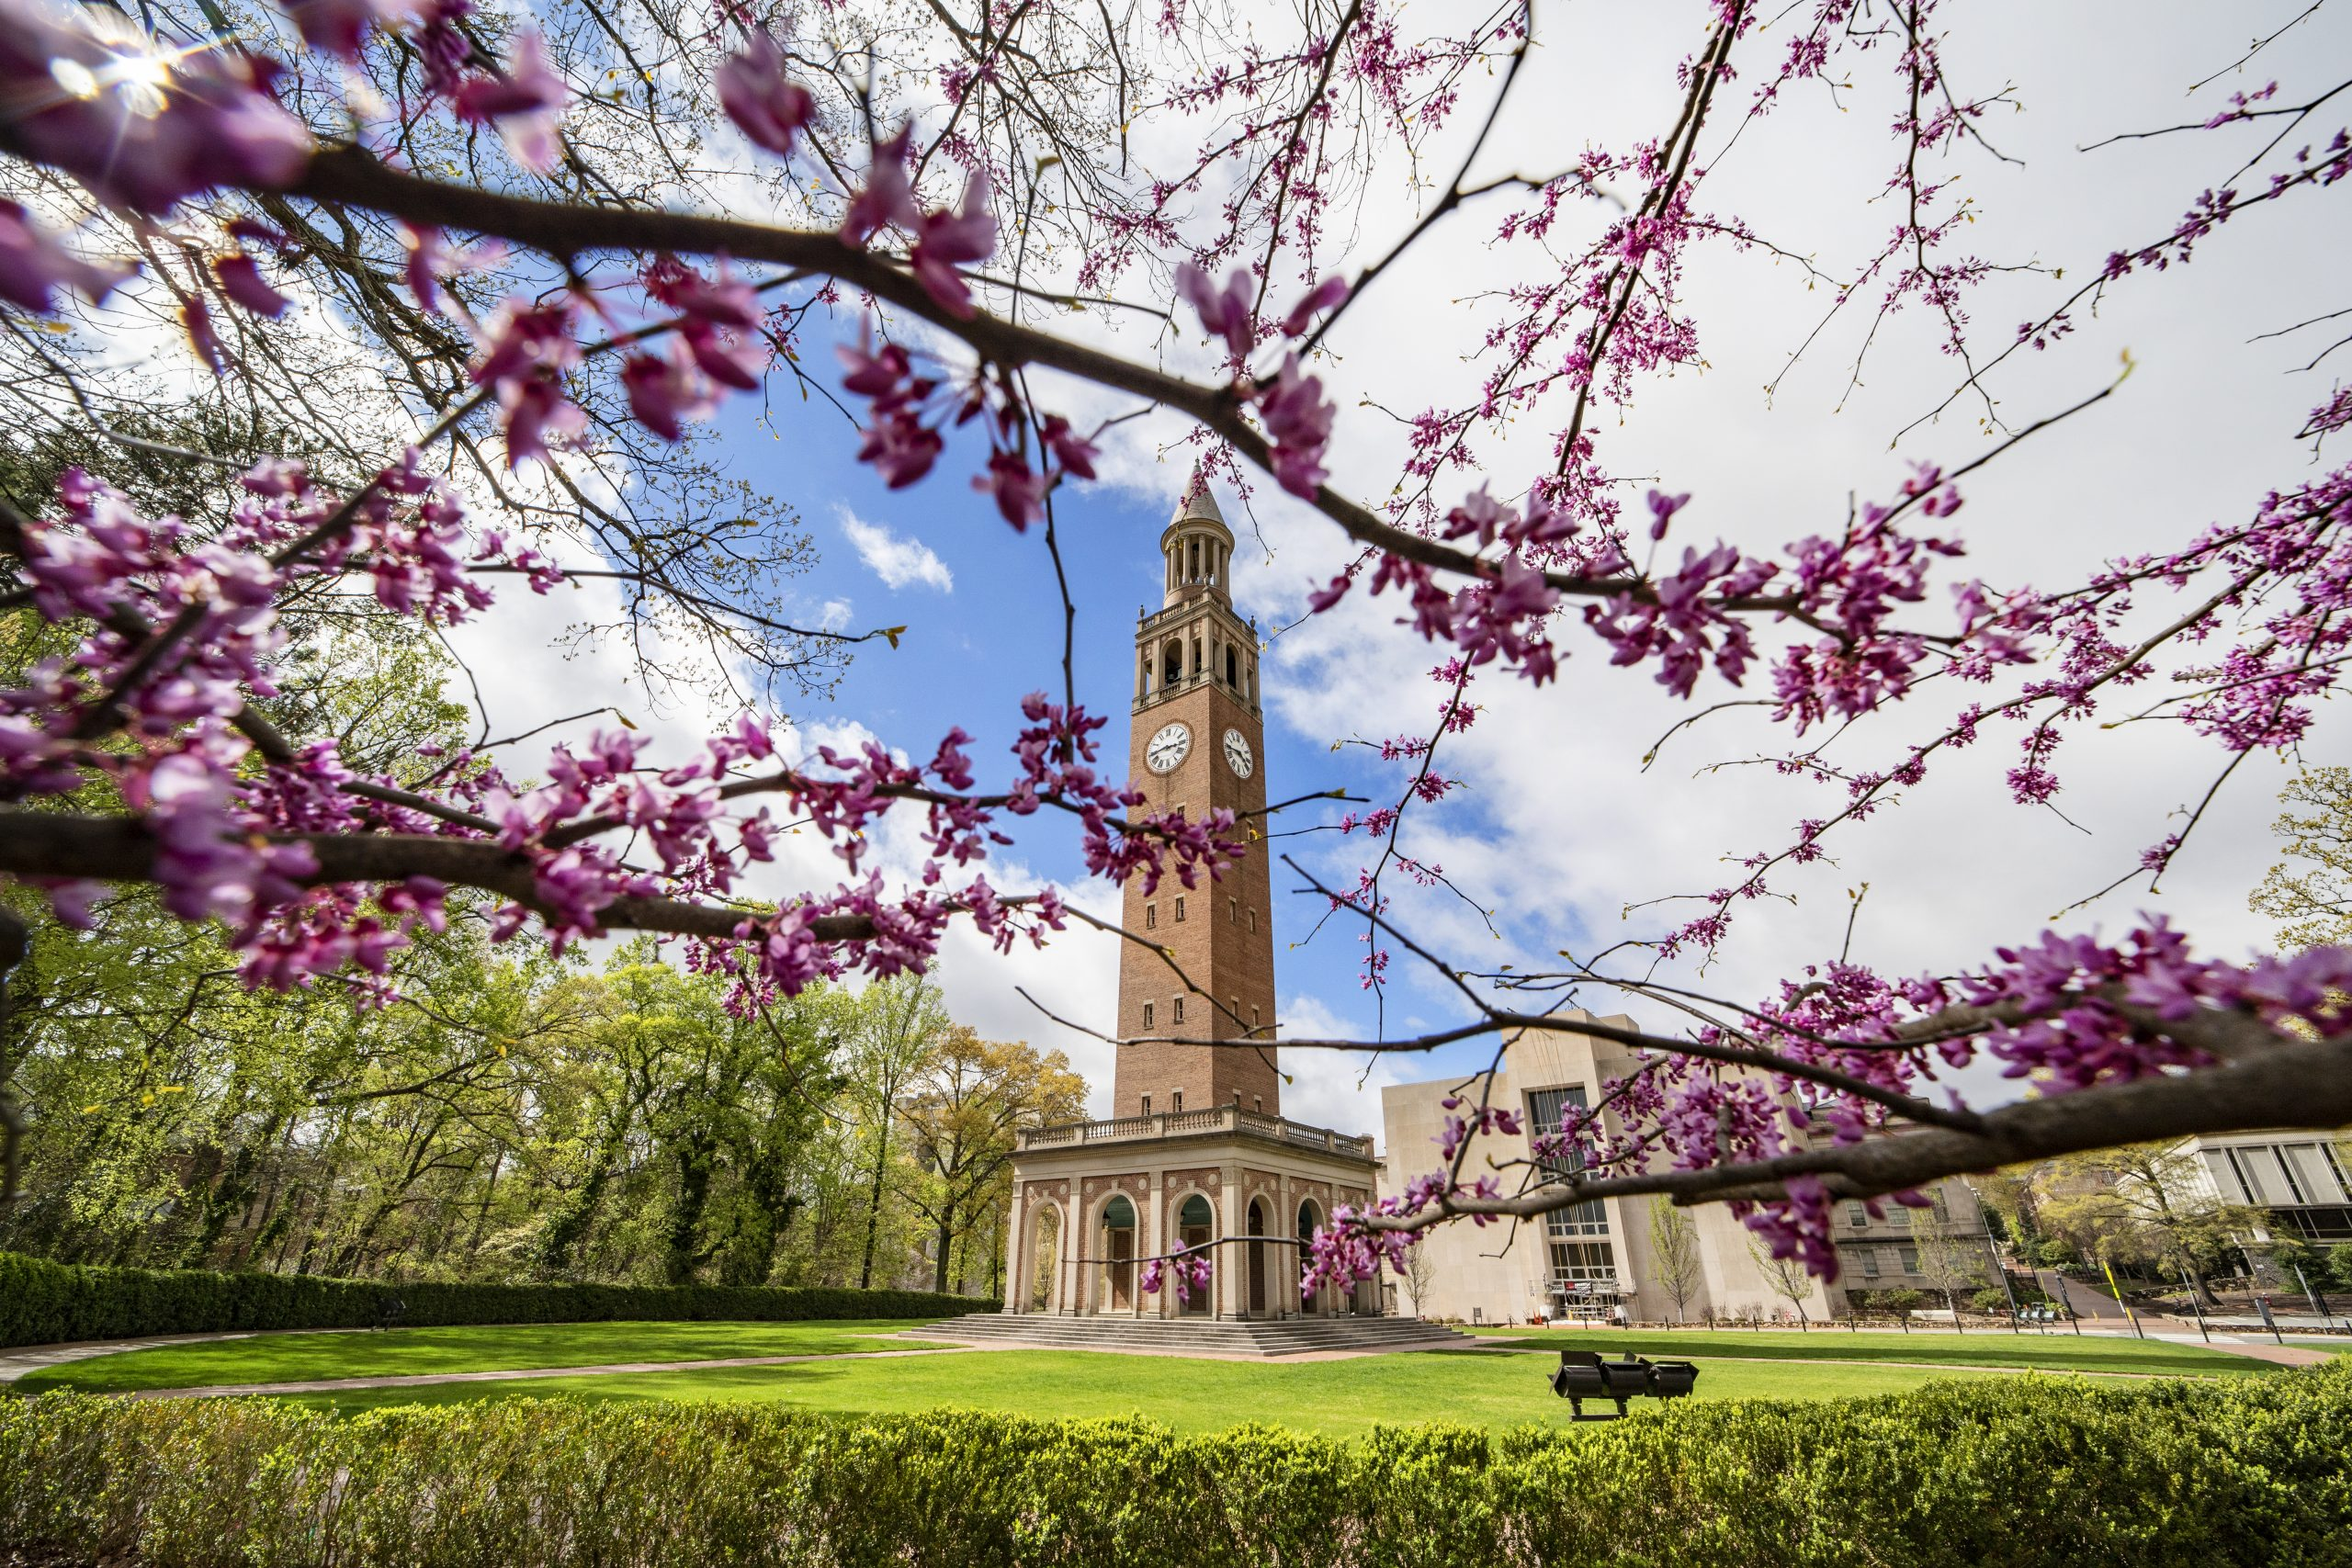 Bell tower in springtime.